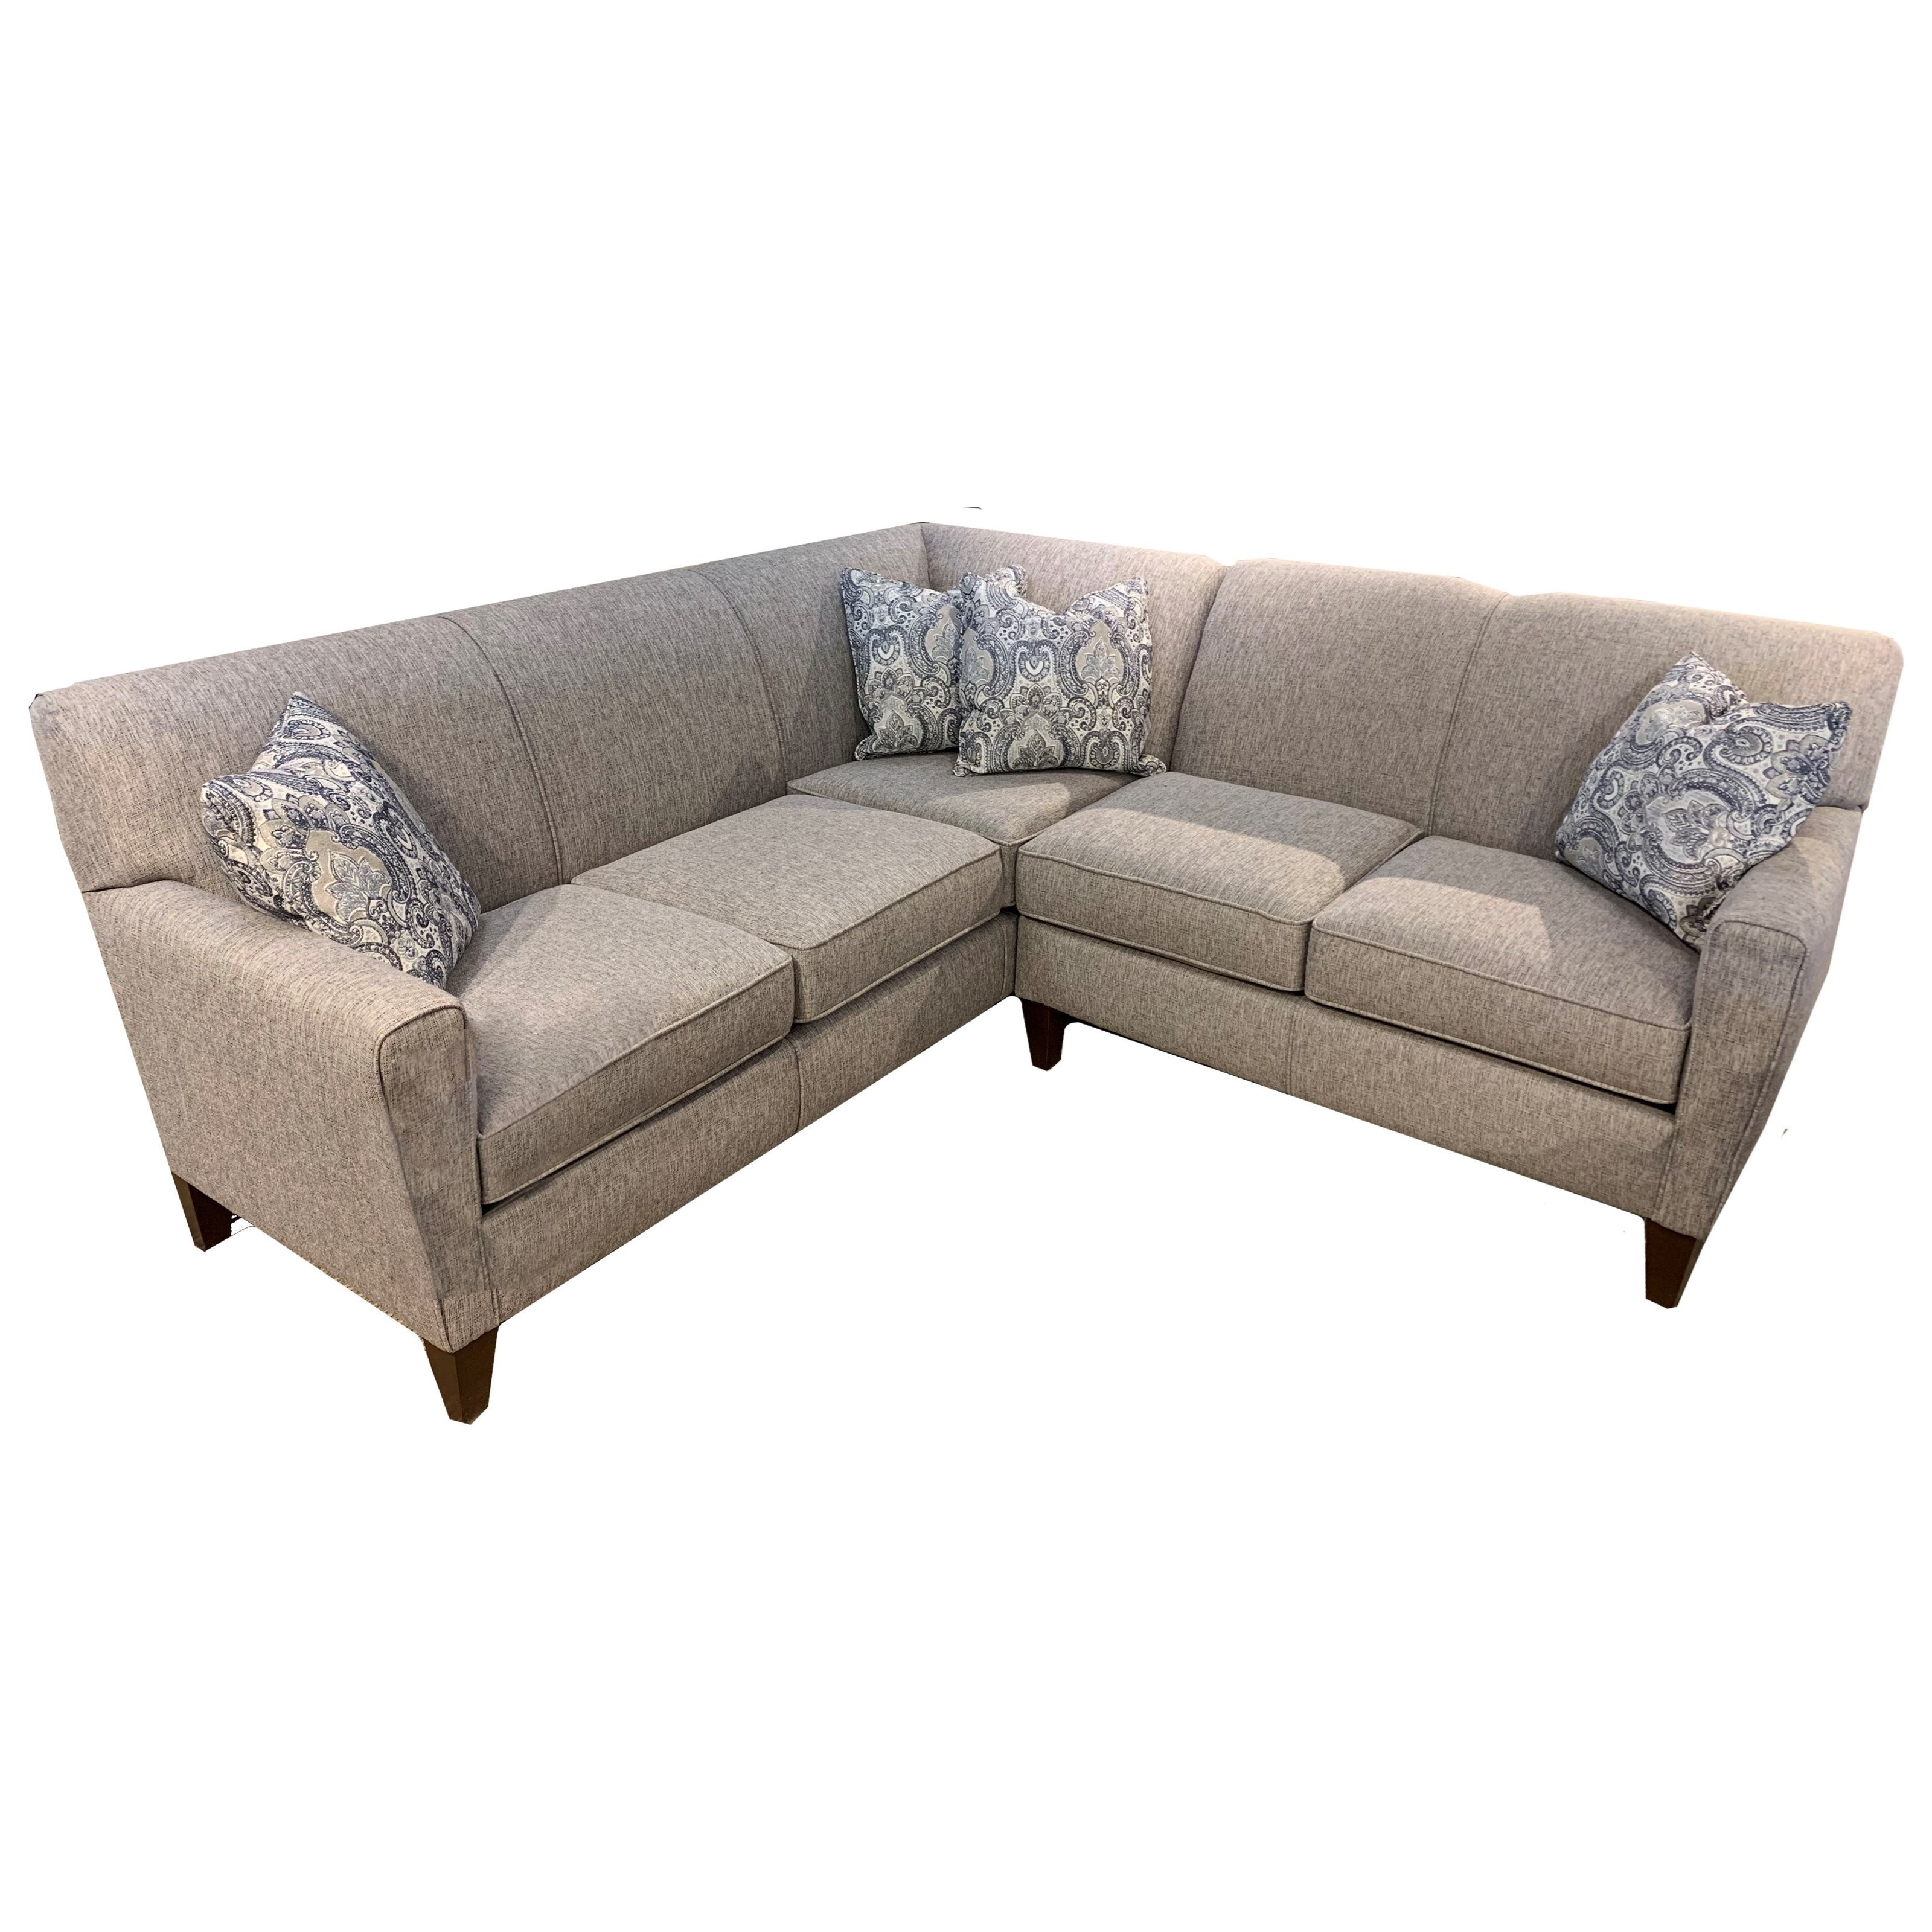 V620 2-Piece Sectional by Alexvale at Turk Furniture